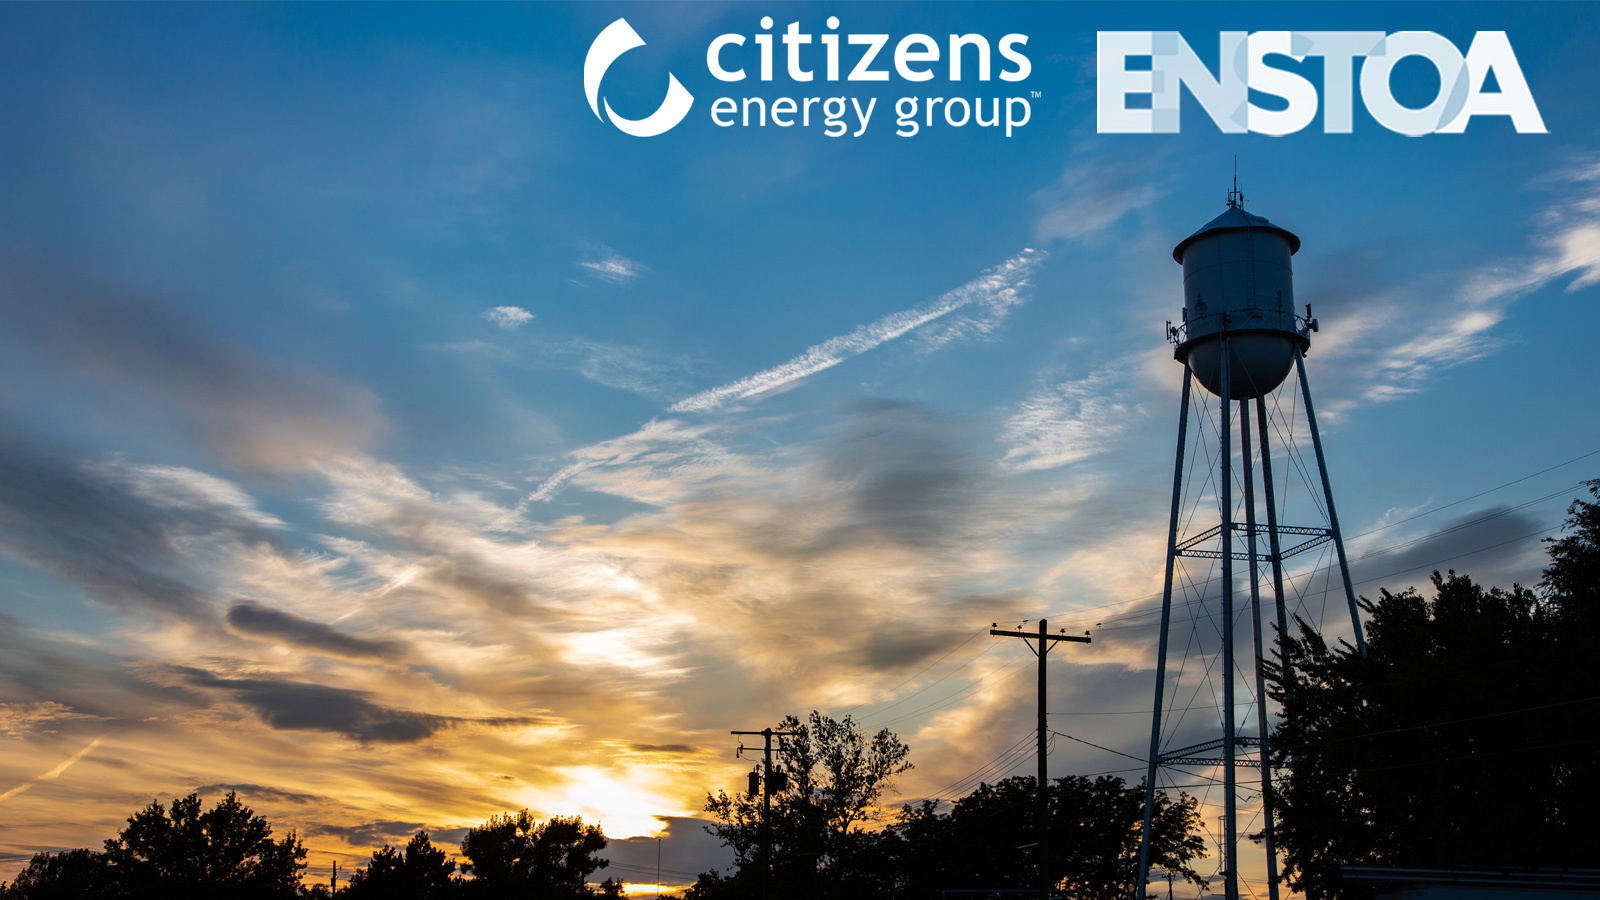 Citizens Energy Group Taps Enstoa for Enhancements to Project Management System